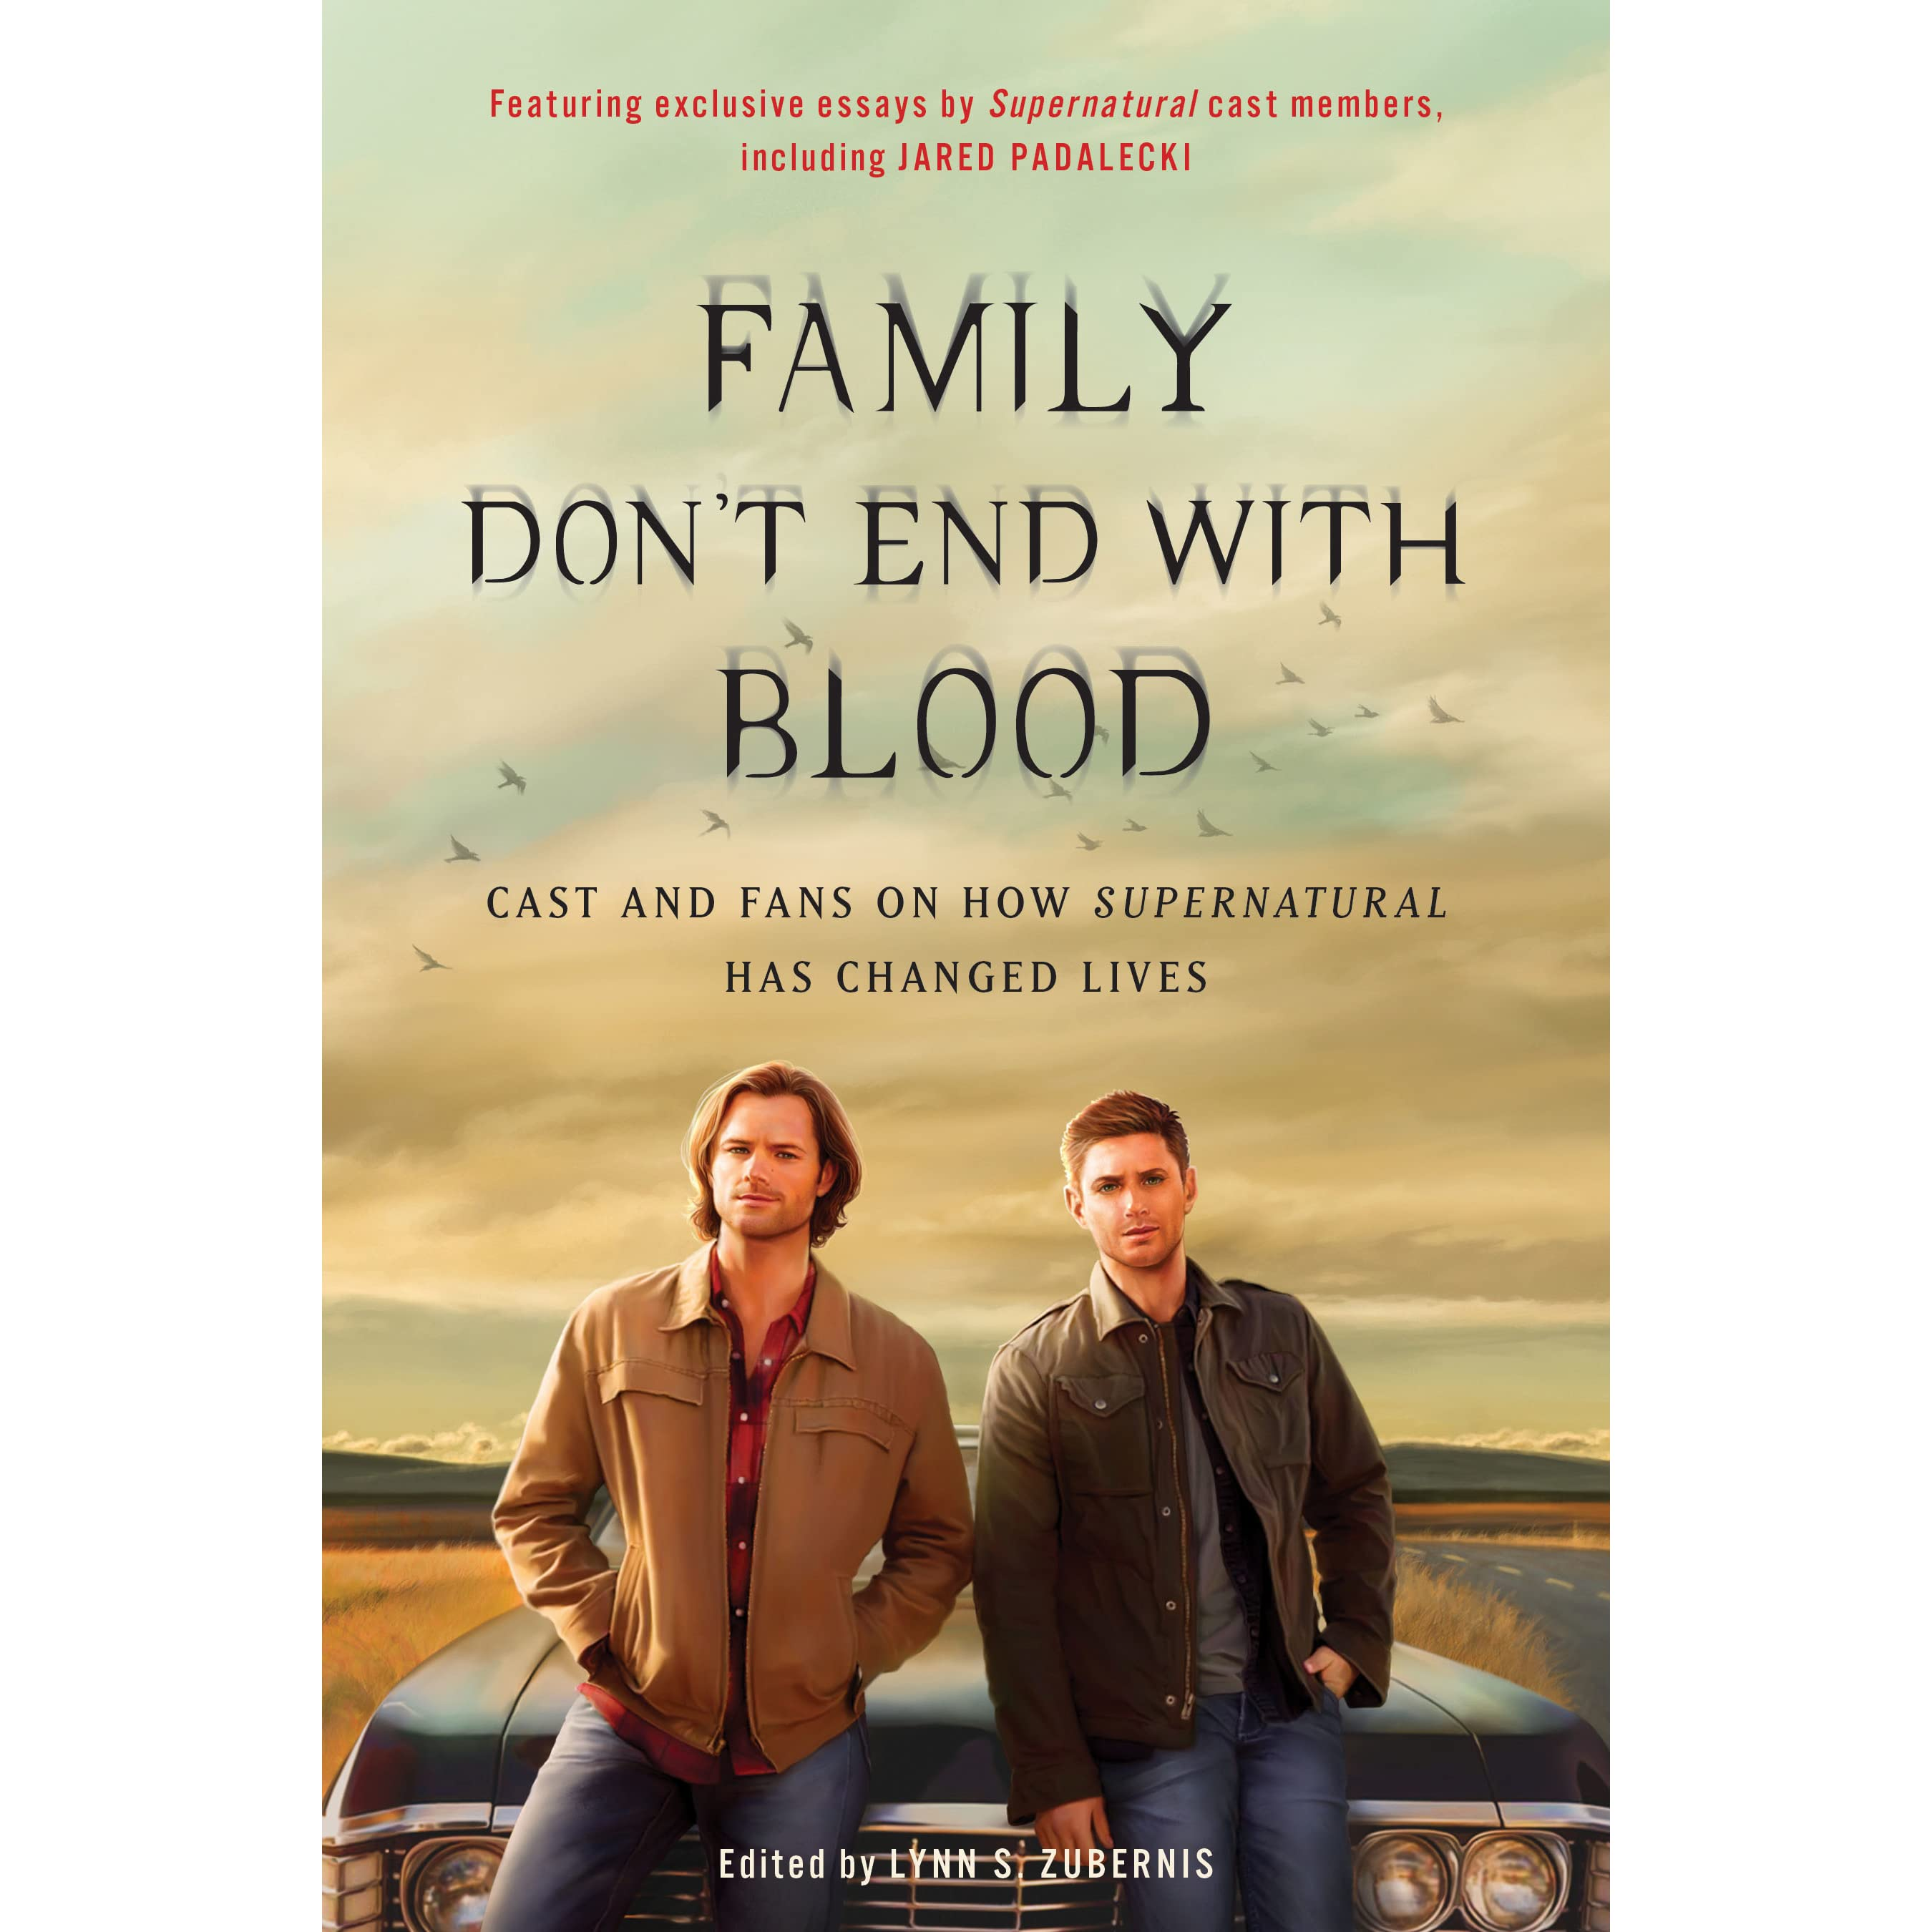 Supernatural Quotes Family Don T End With Blood: Family Don't End With Blood: Cast And Fans On How